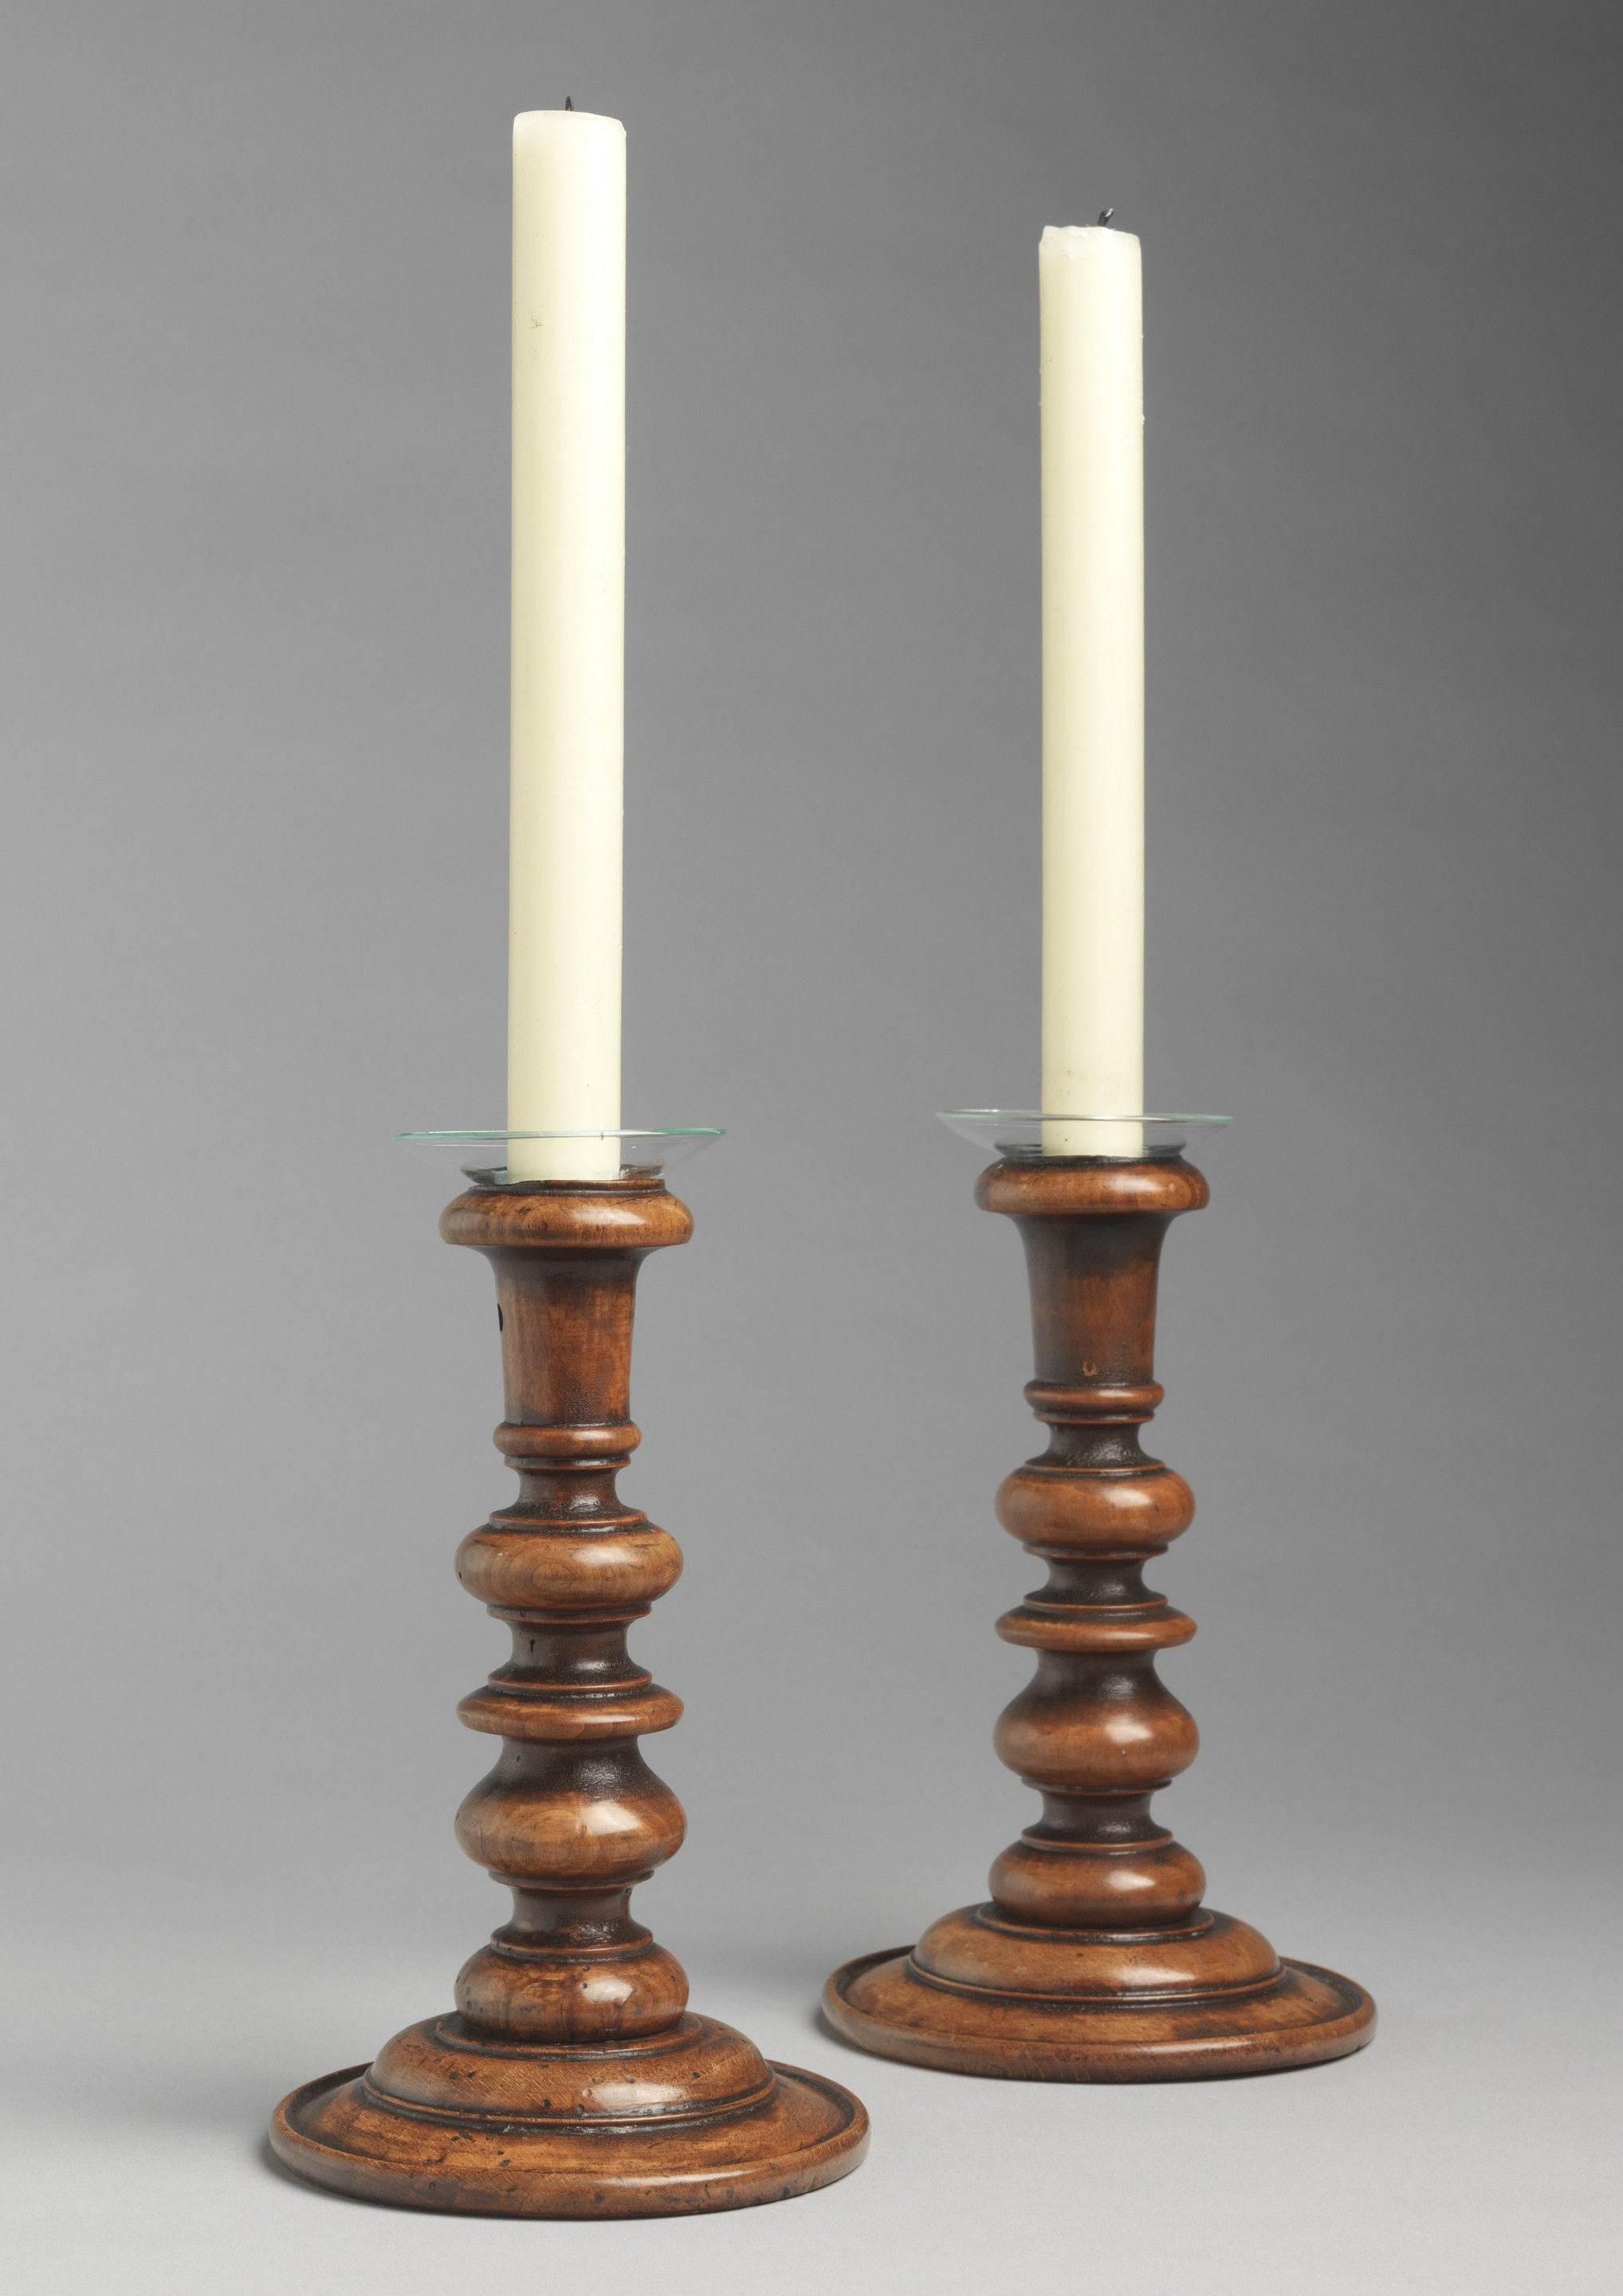 Finely Turned Treenware Candlesticks